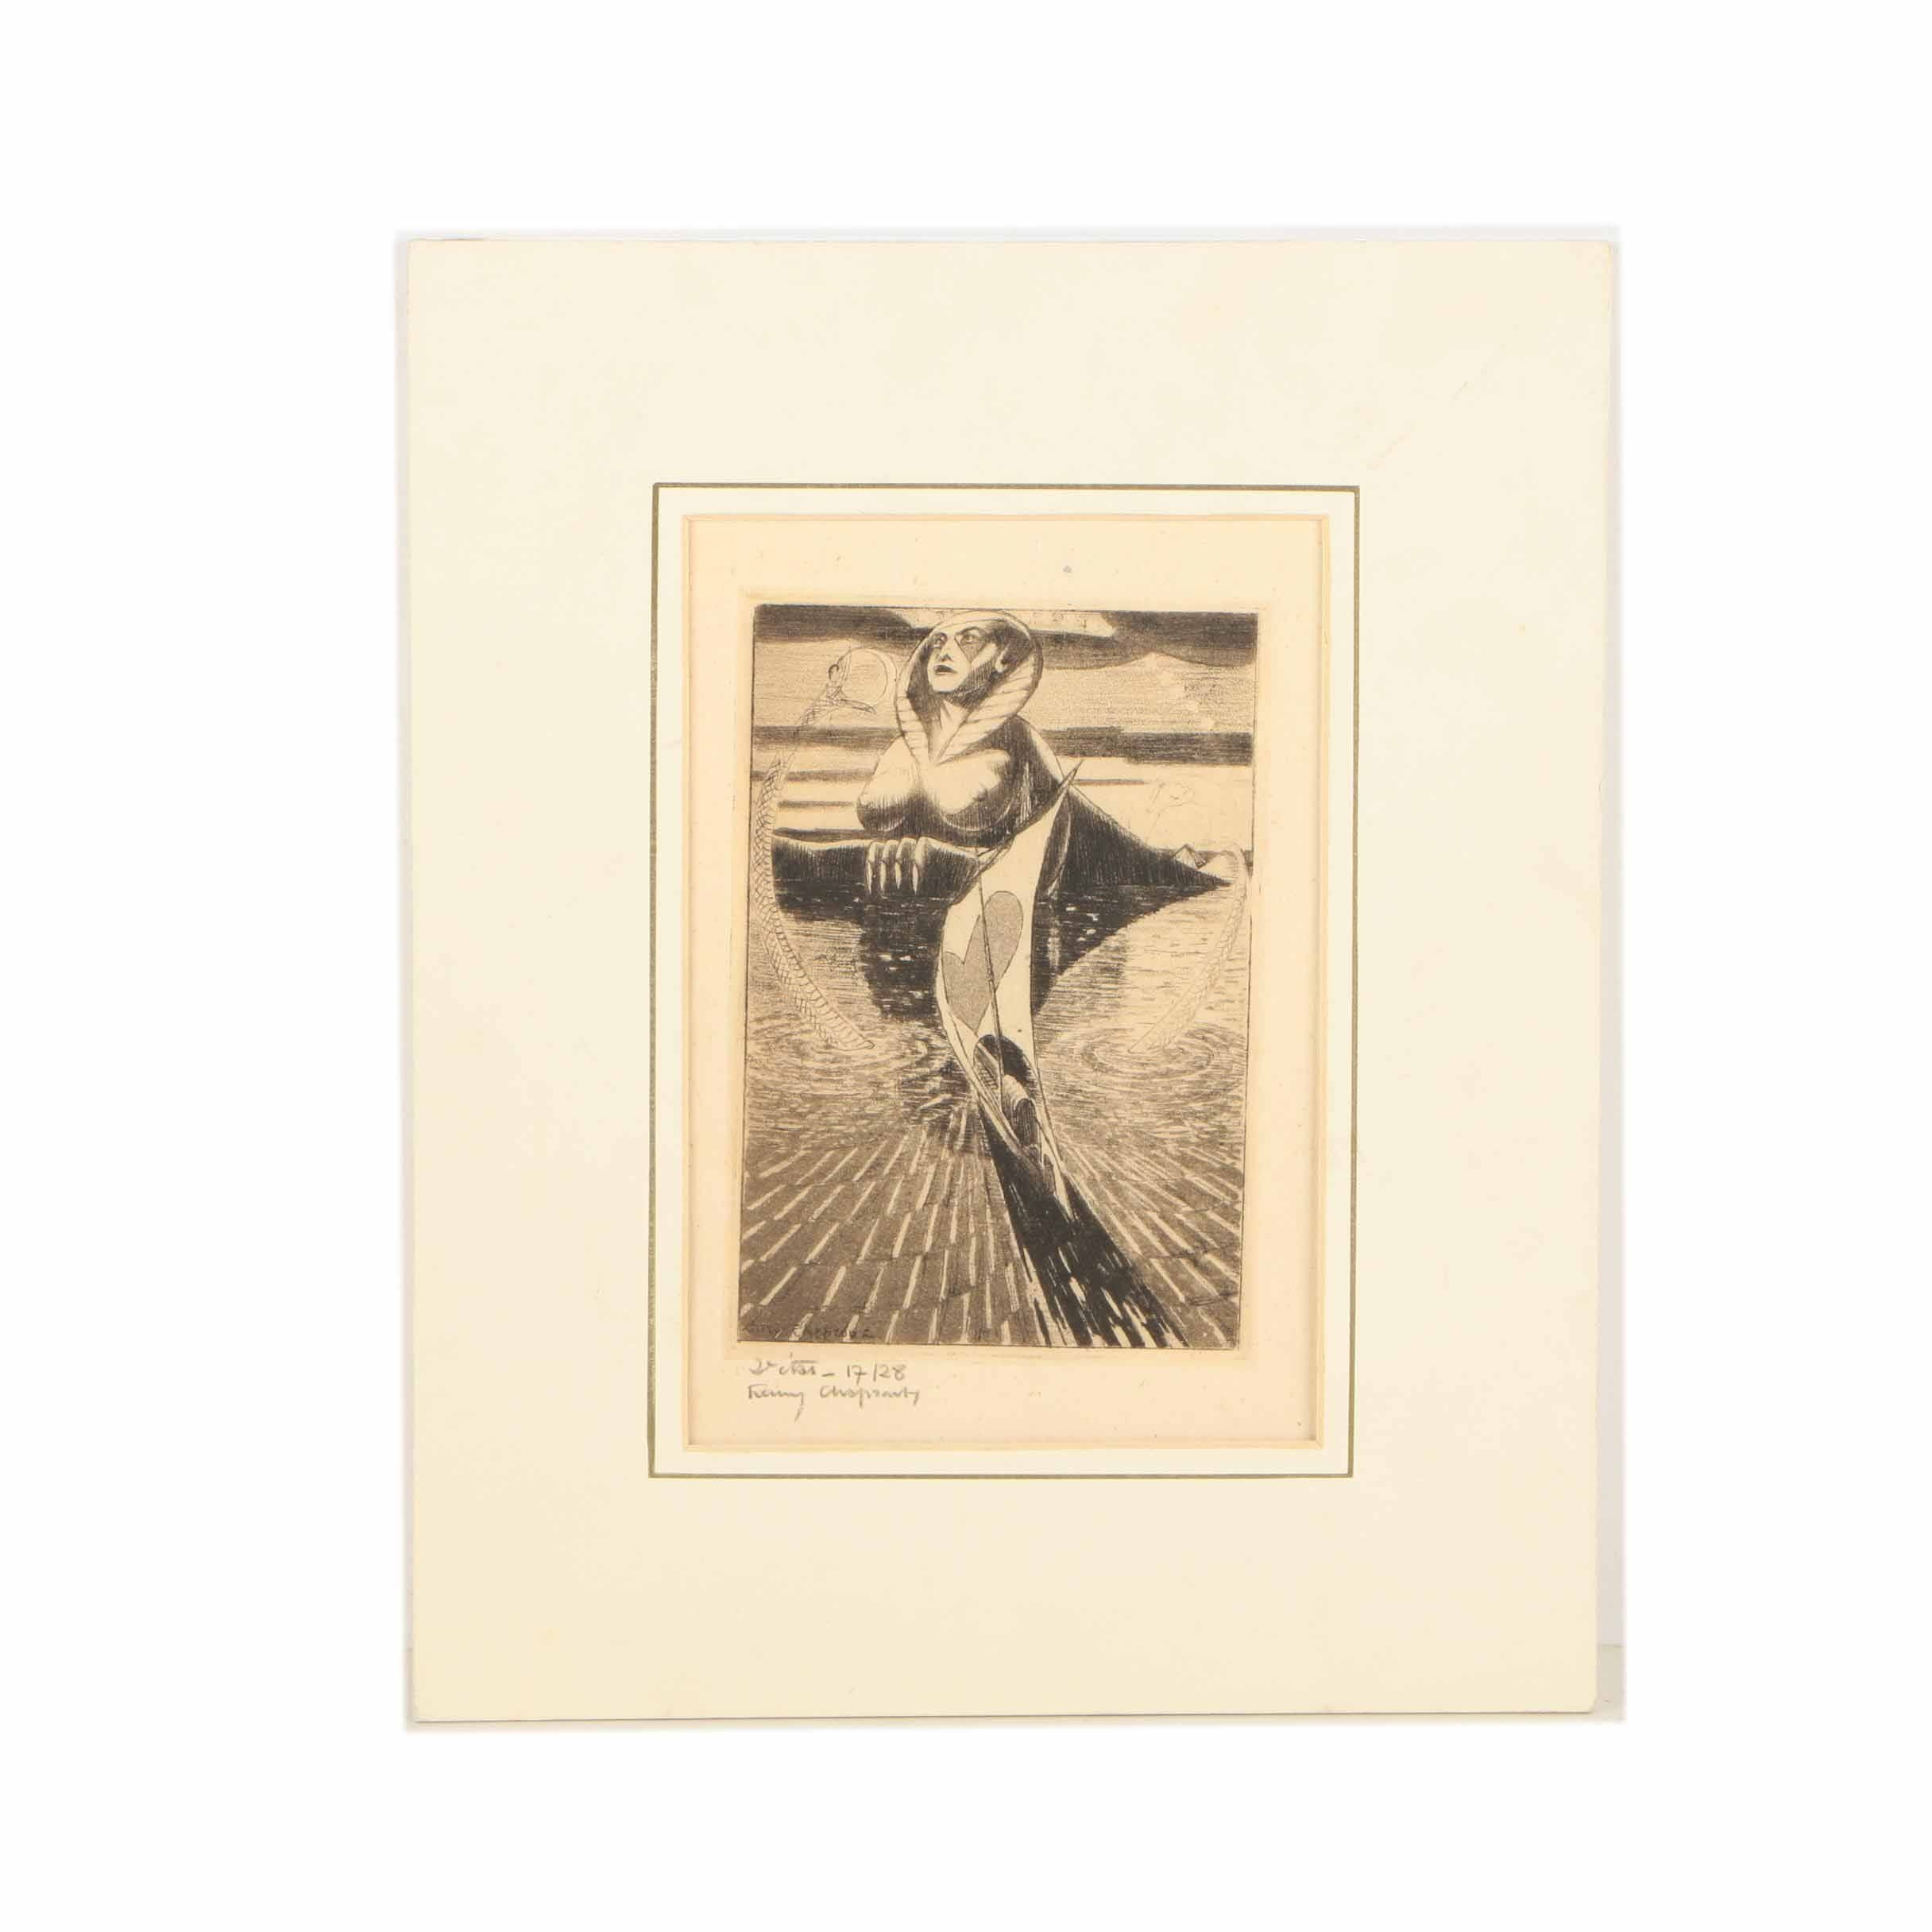 Henry Chapront Limited Edition Etching of a Surrealist Landscape with a Sphinx